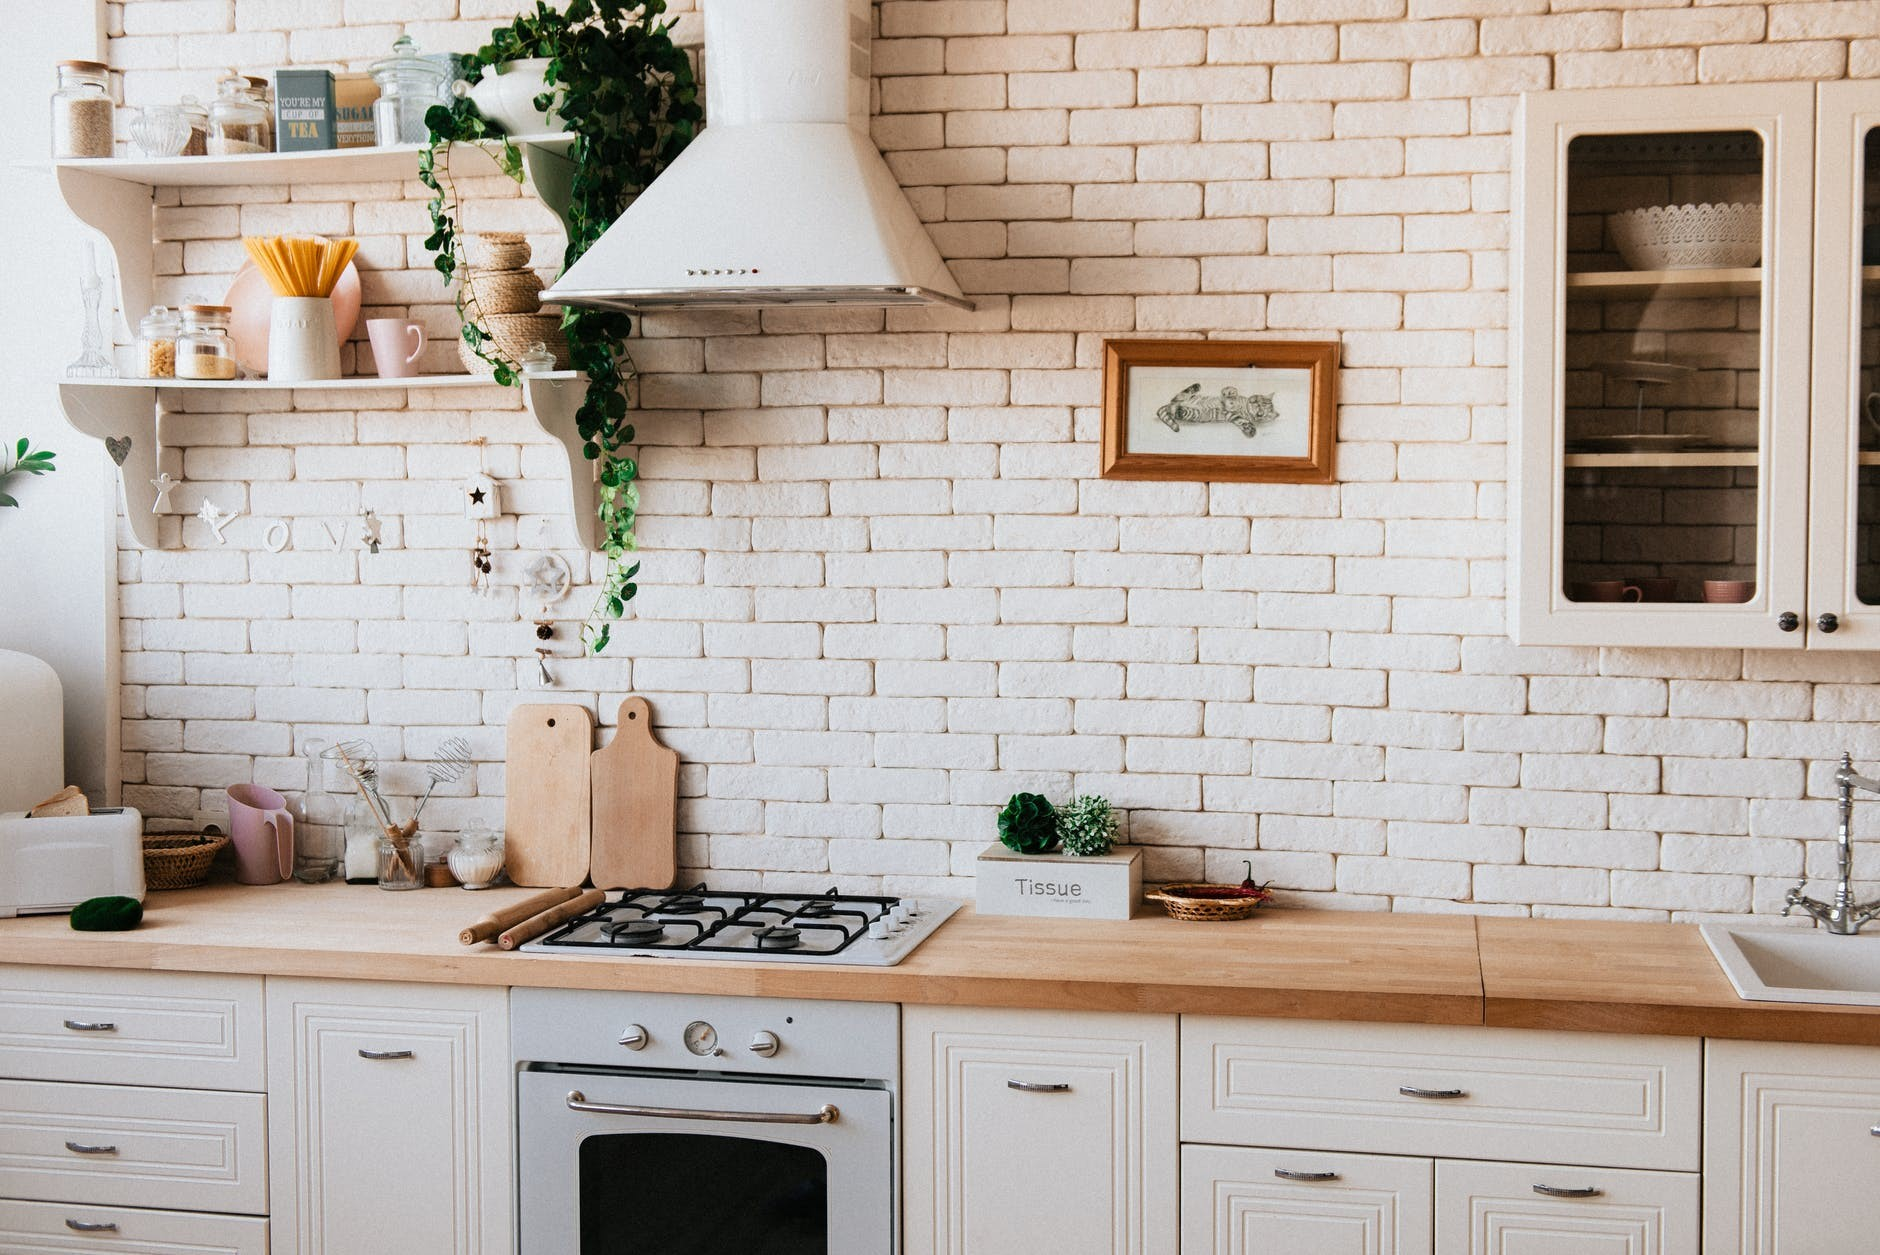 Join the Elite Club With These Chic Kitchen Decor Ideas